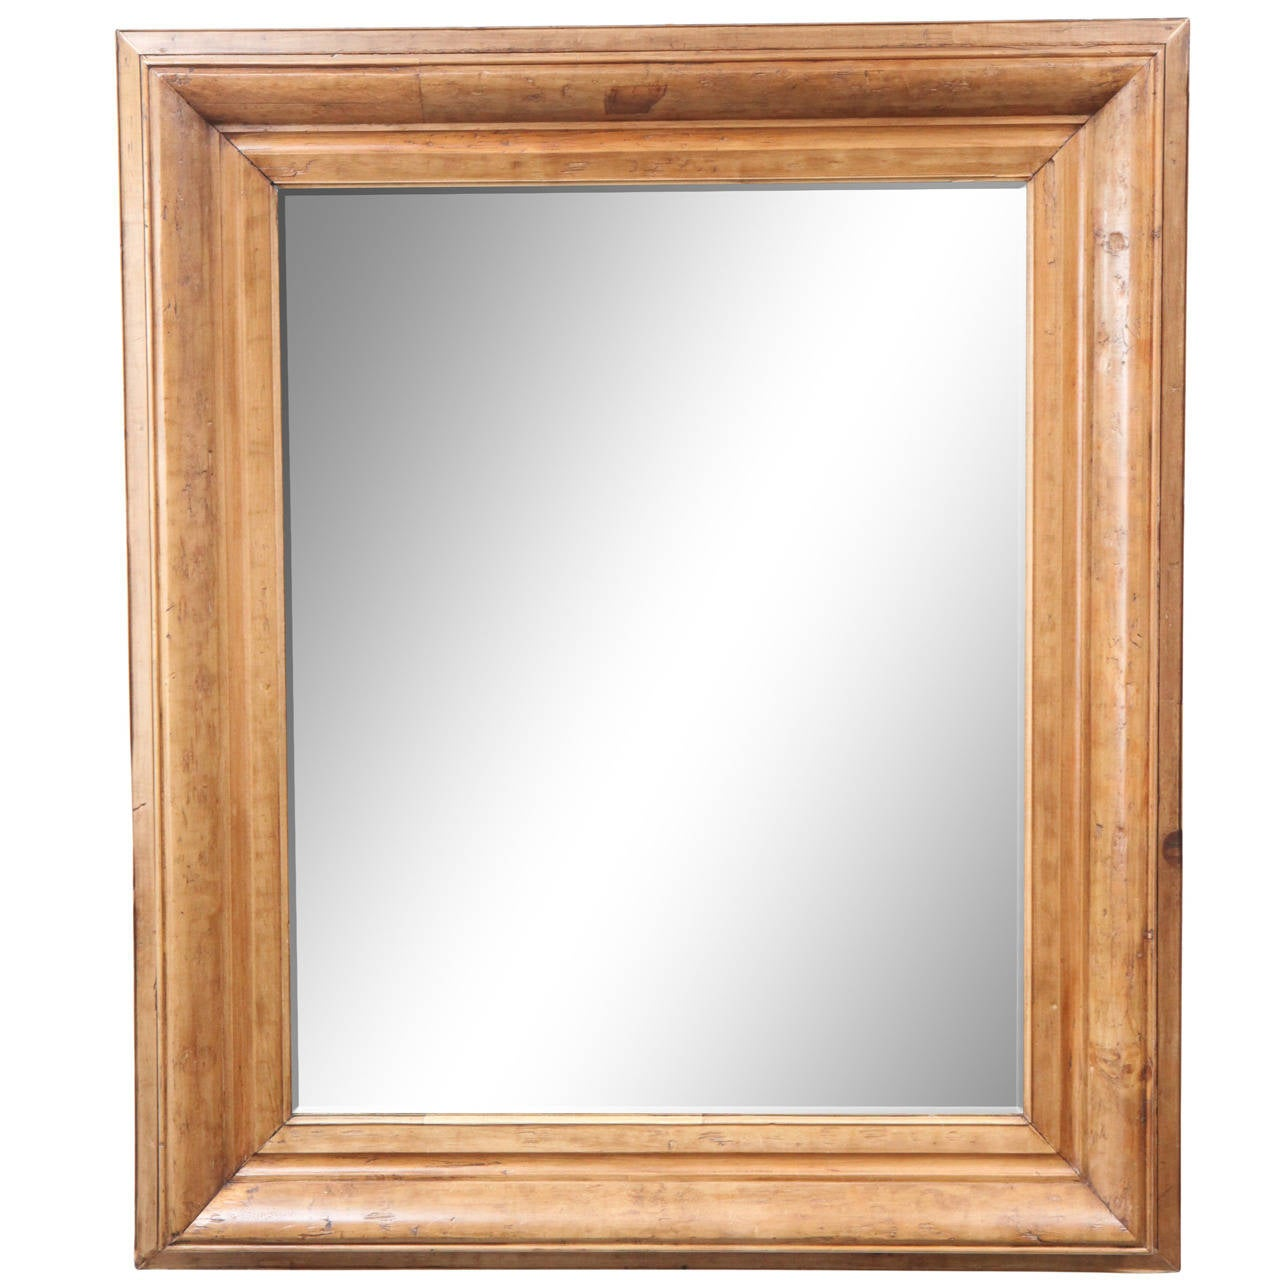 Large 19th century pine frame mirror at 1stdibs for Tall framed mirror